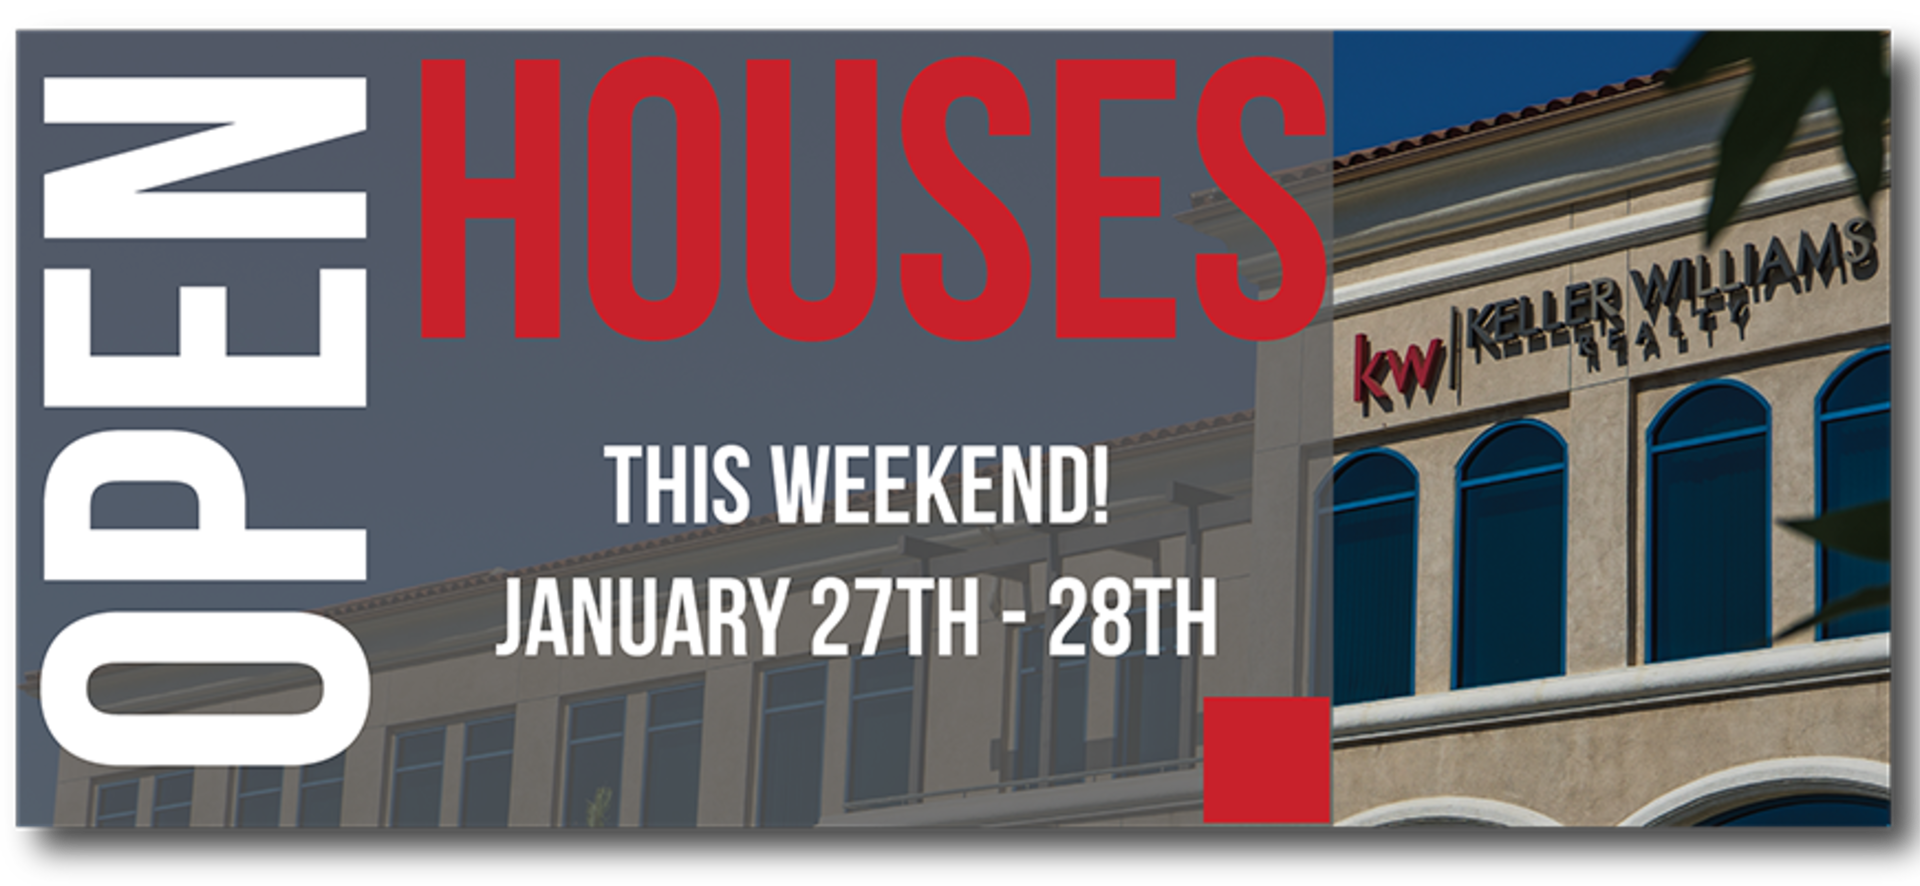 Open Houses This Weekend January 27th-28th